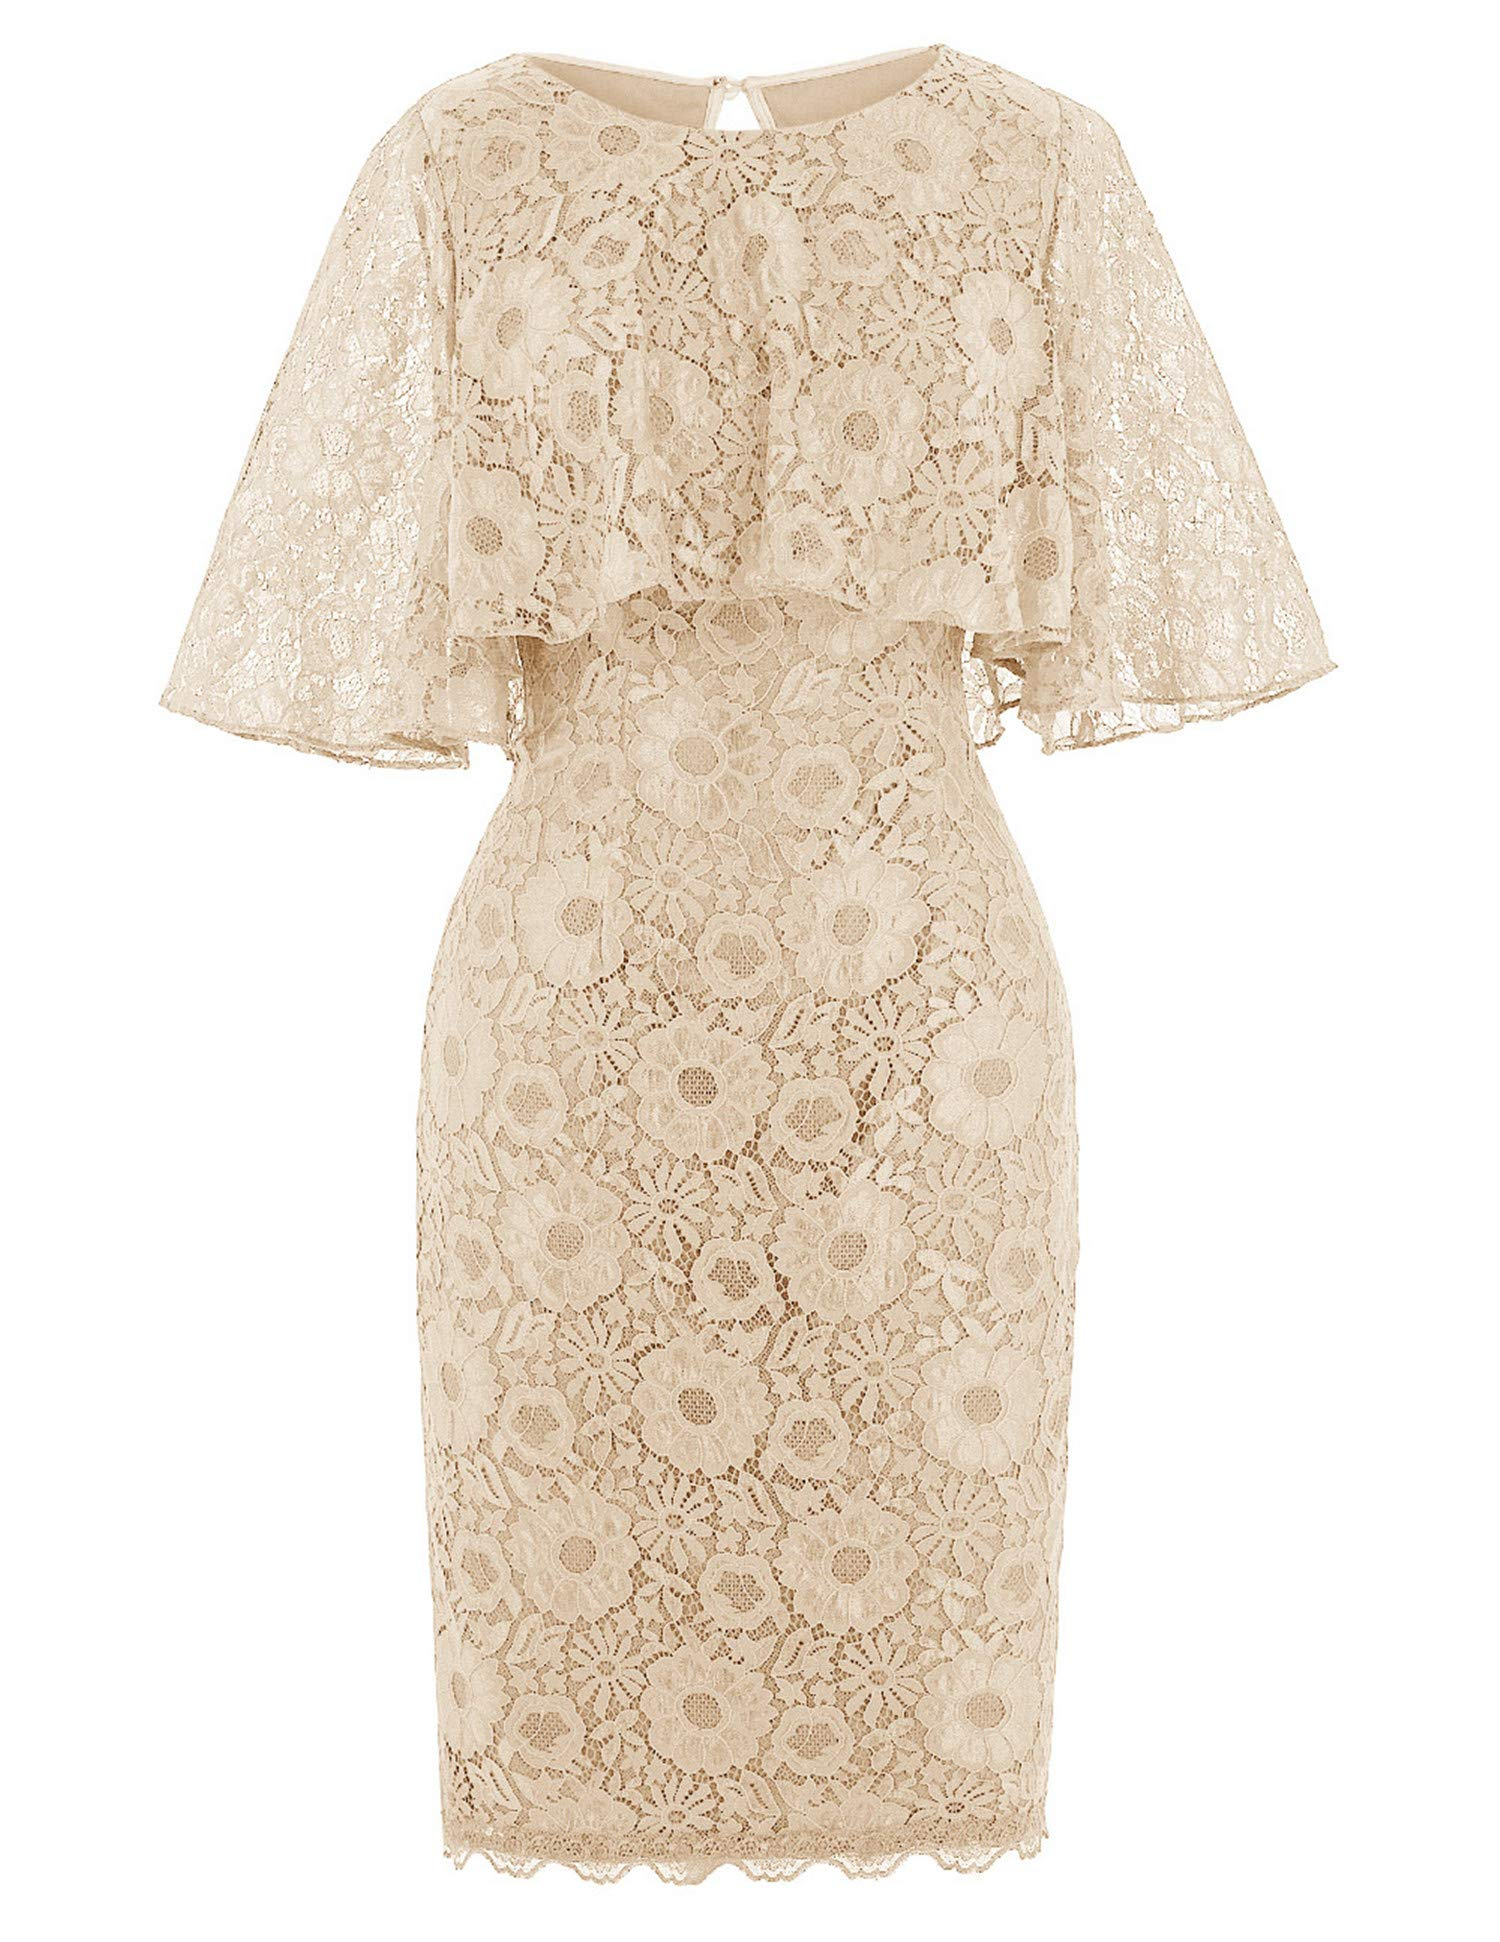 WHZZ Short Mother of The Bride Dress 8 Lace Dress for Wedding